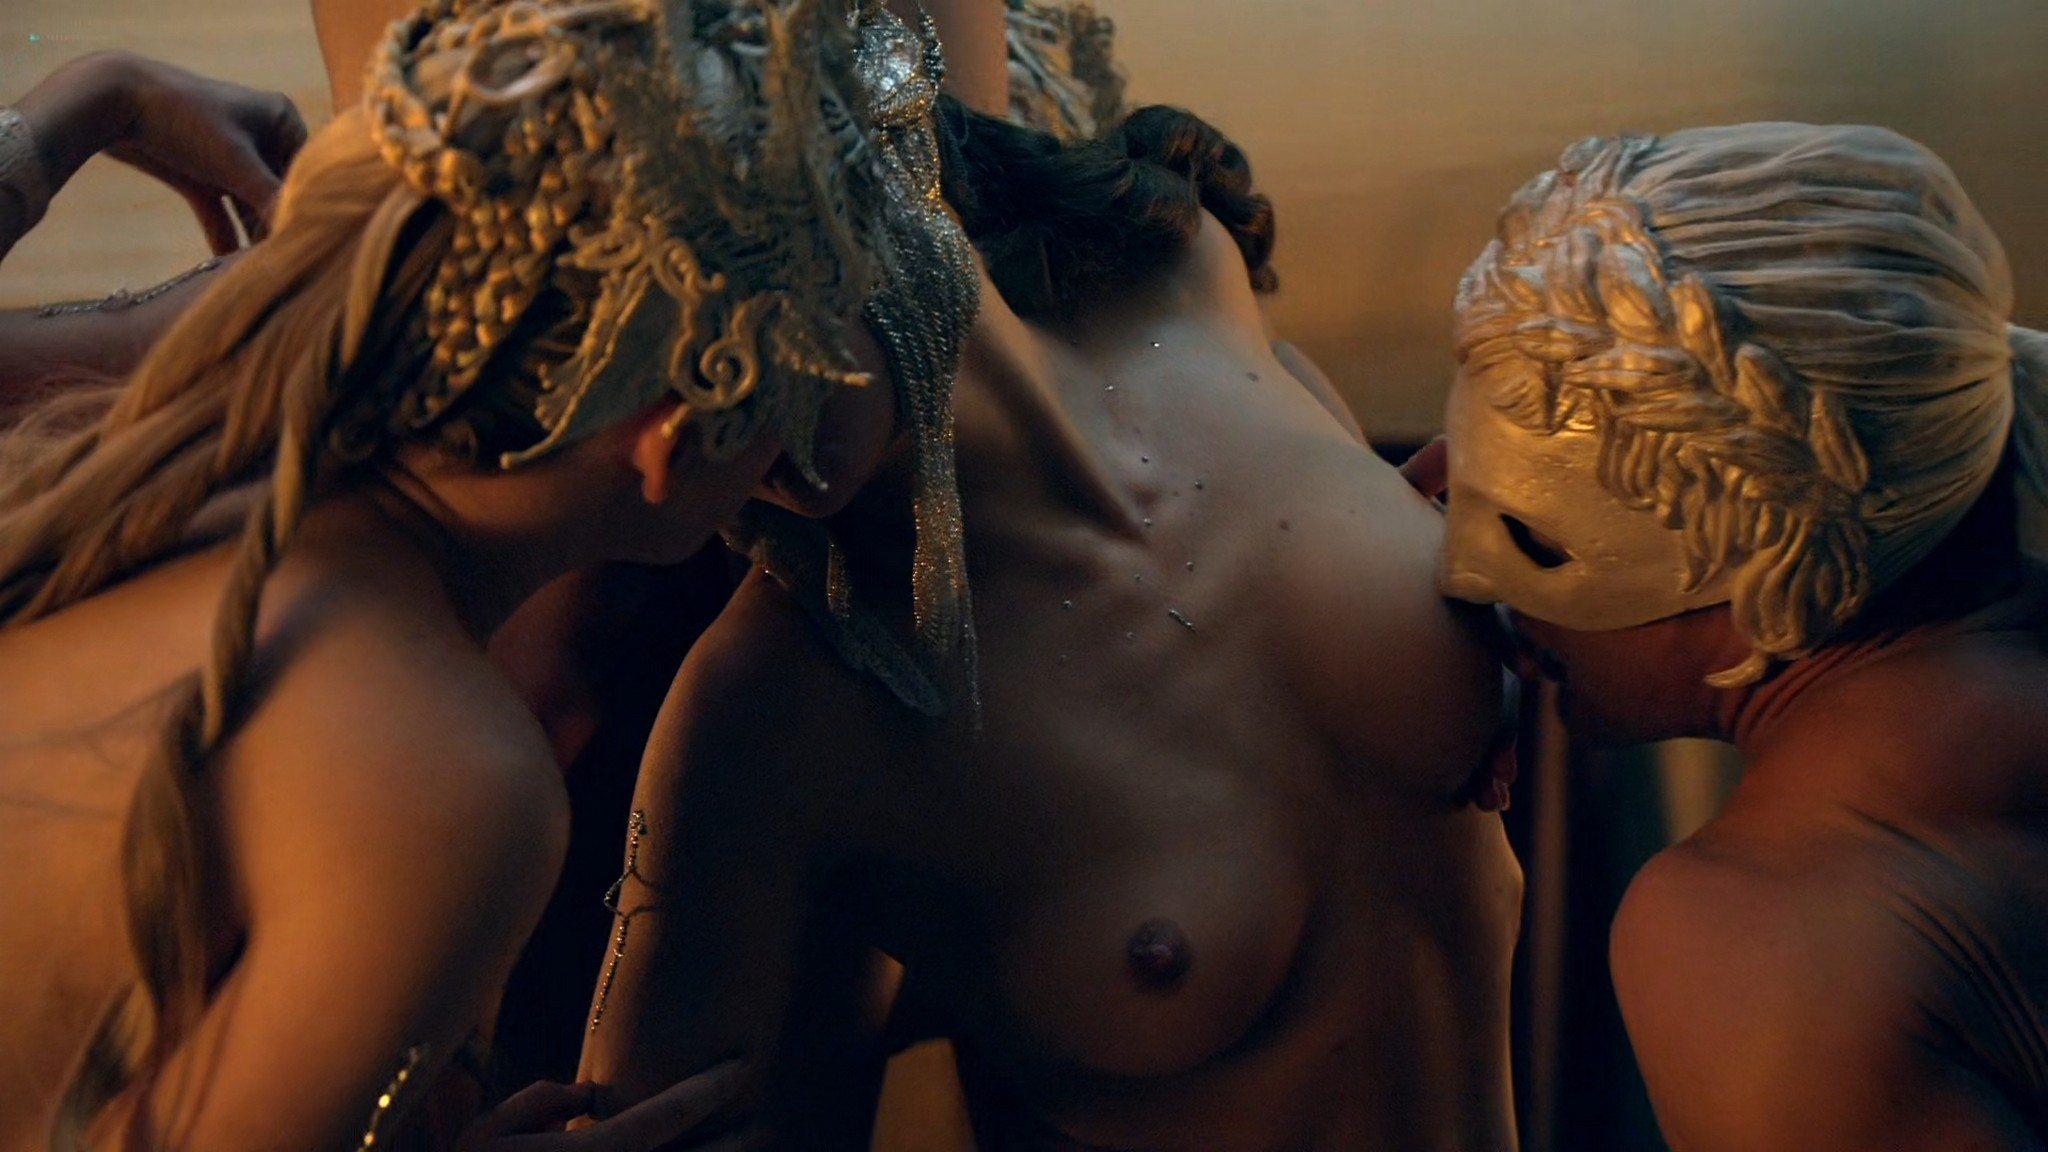 Viva Bianca nude Lucy Lawless nude sex others nude - Spartacus - Vengeance (2012) e4 1080p BluRay (8)